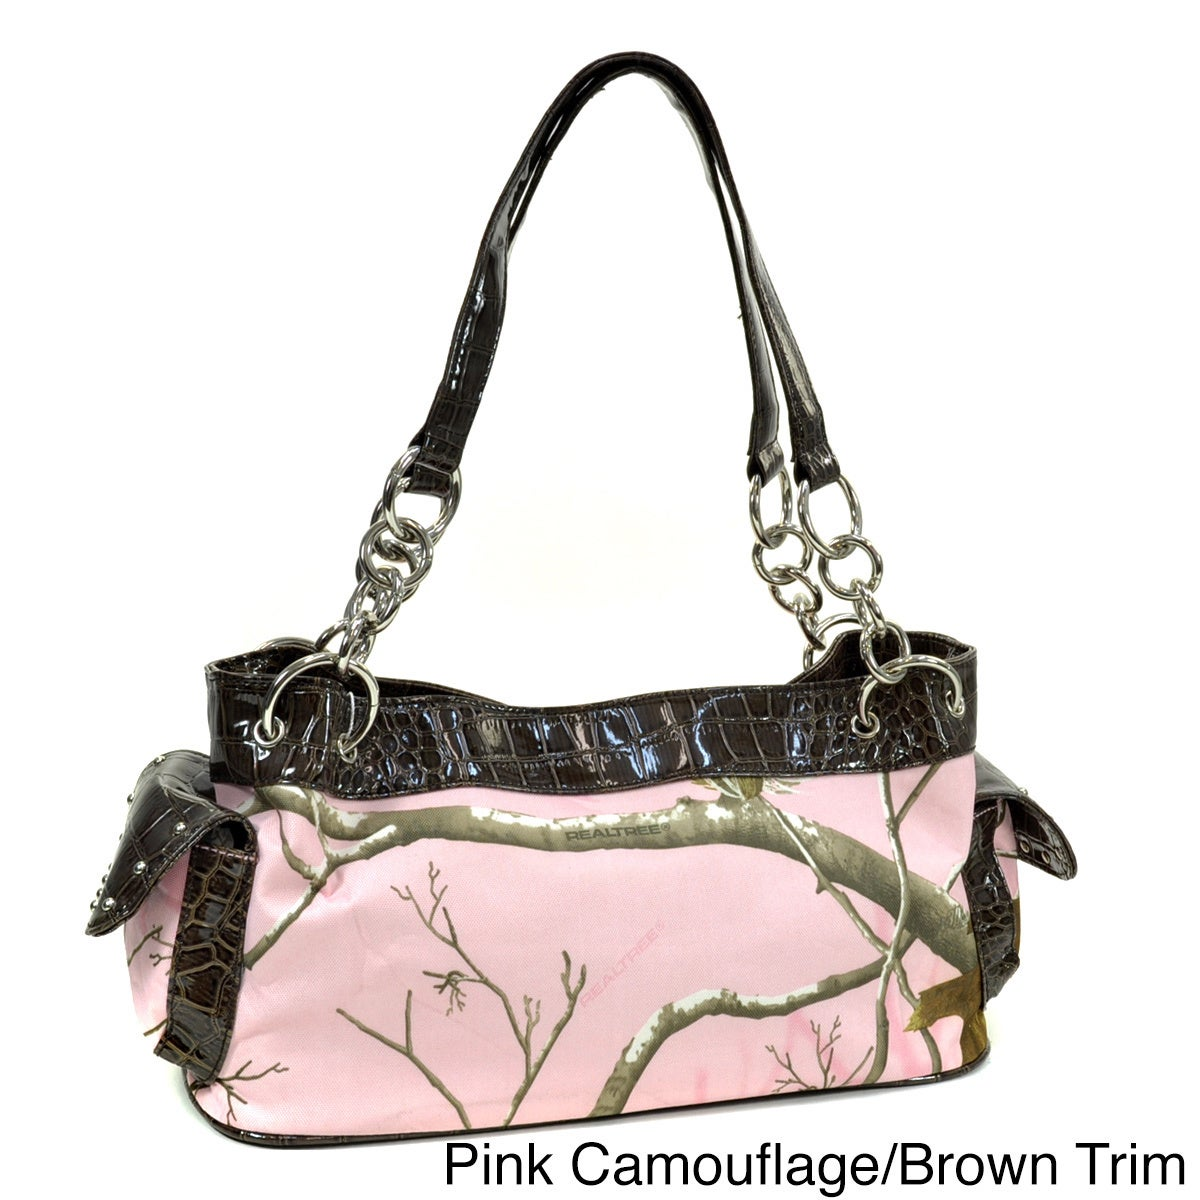 Realtree Camouflage Studded Shoulder Bag with Chain Handl...